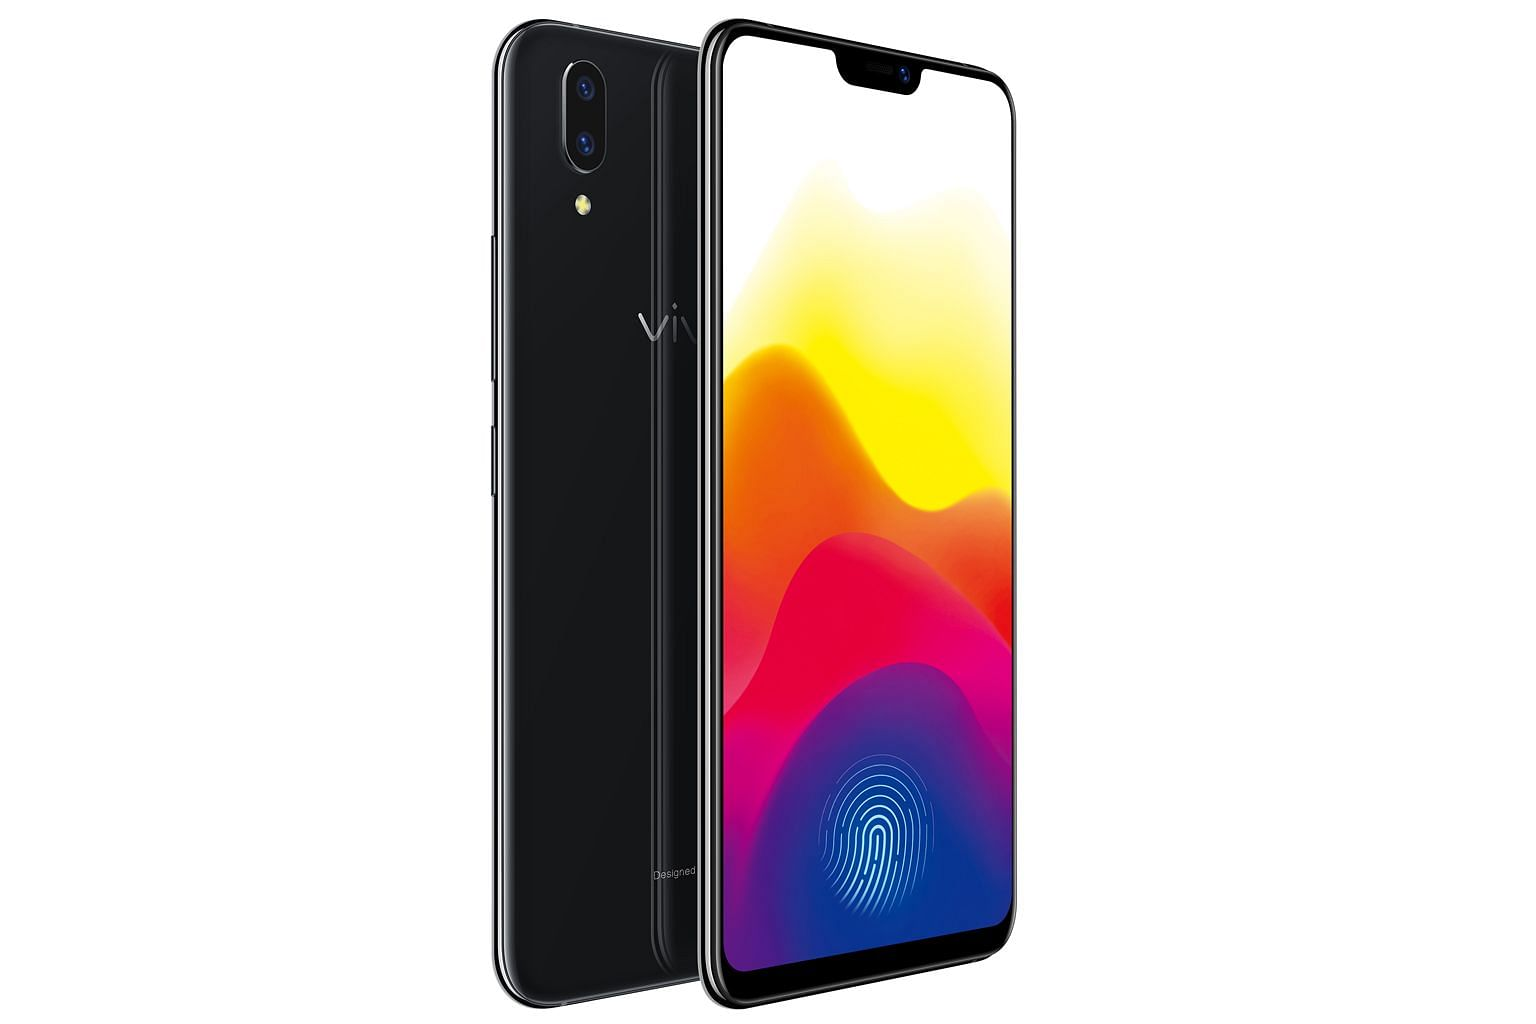 The Vivo X21 has an all-screen design with a thin bezel and a notch at the top to accommodate the front camera.